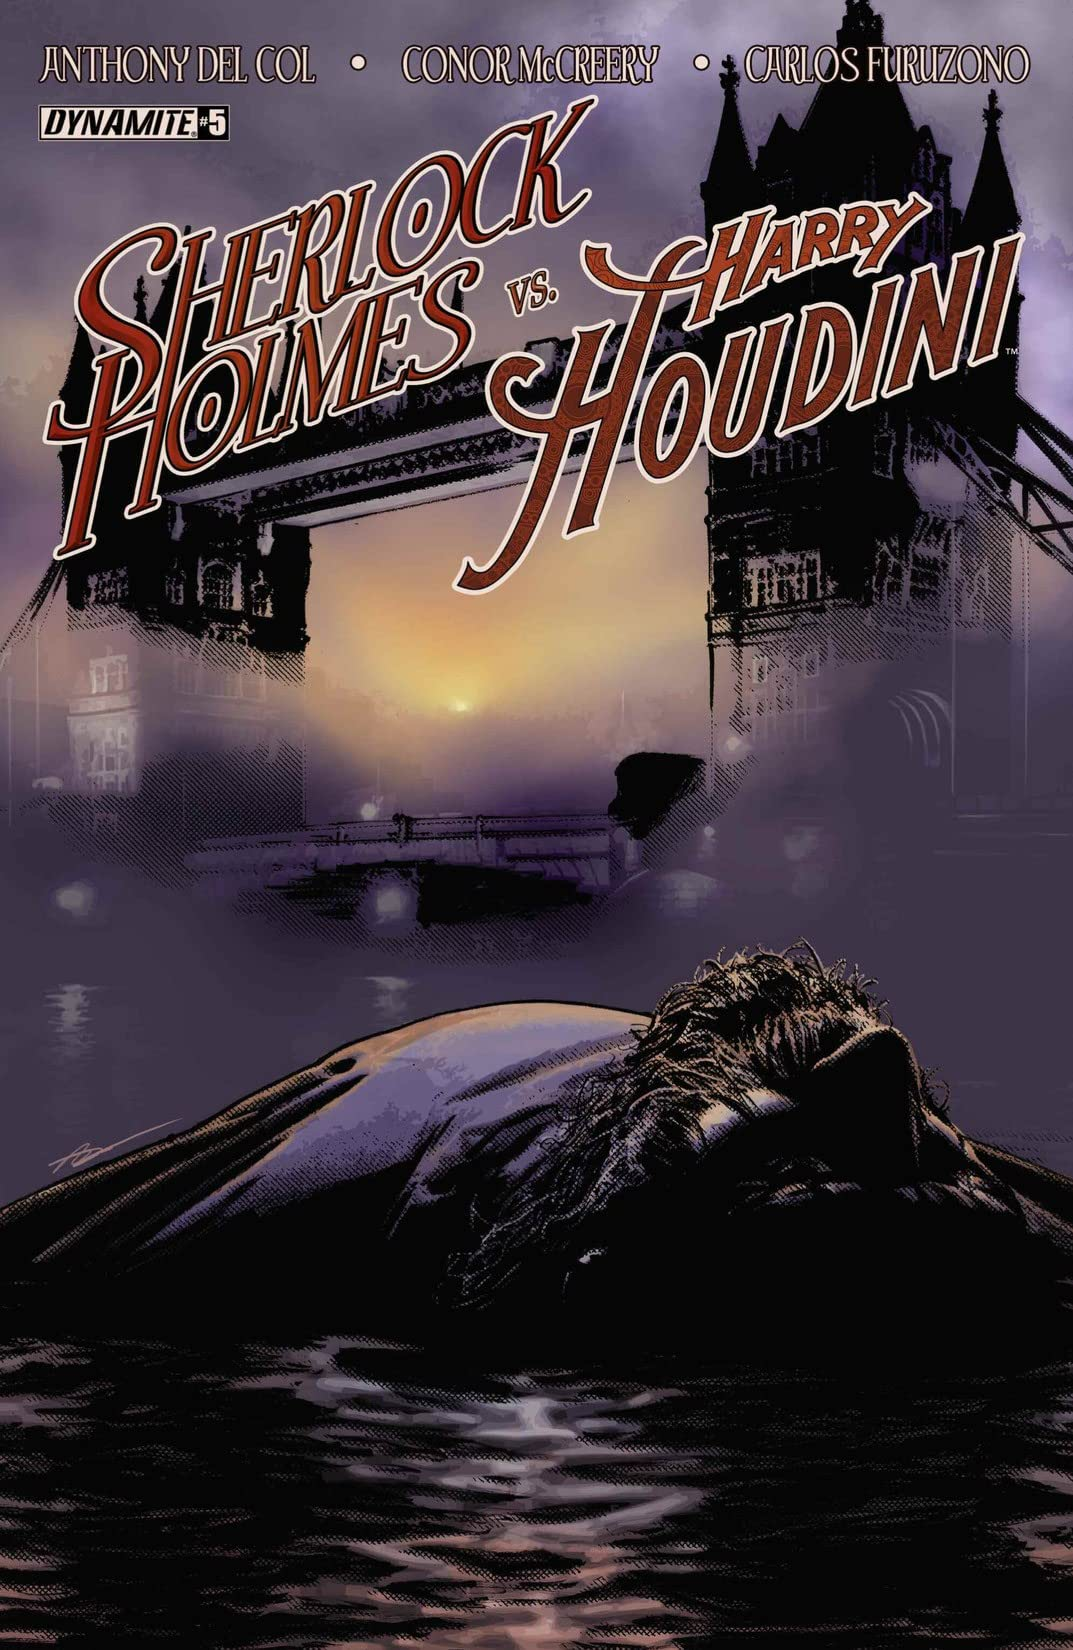 Sherlock Holmes vs. Harry Houdini #5 (of 5): Digital Exclusive Edition